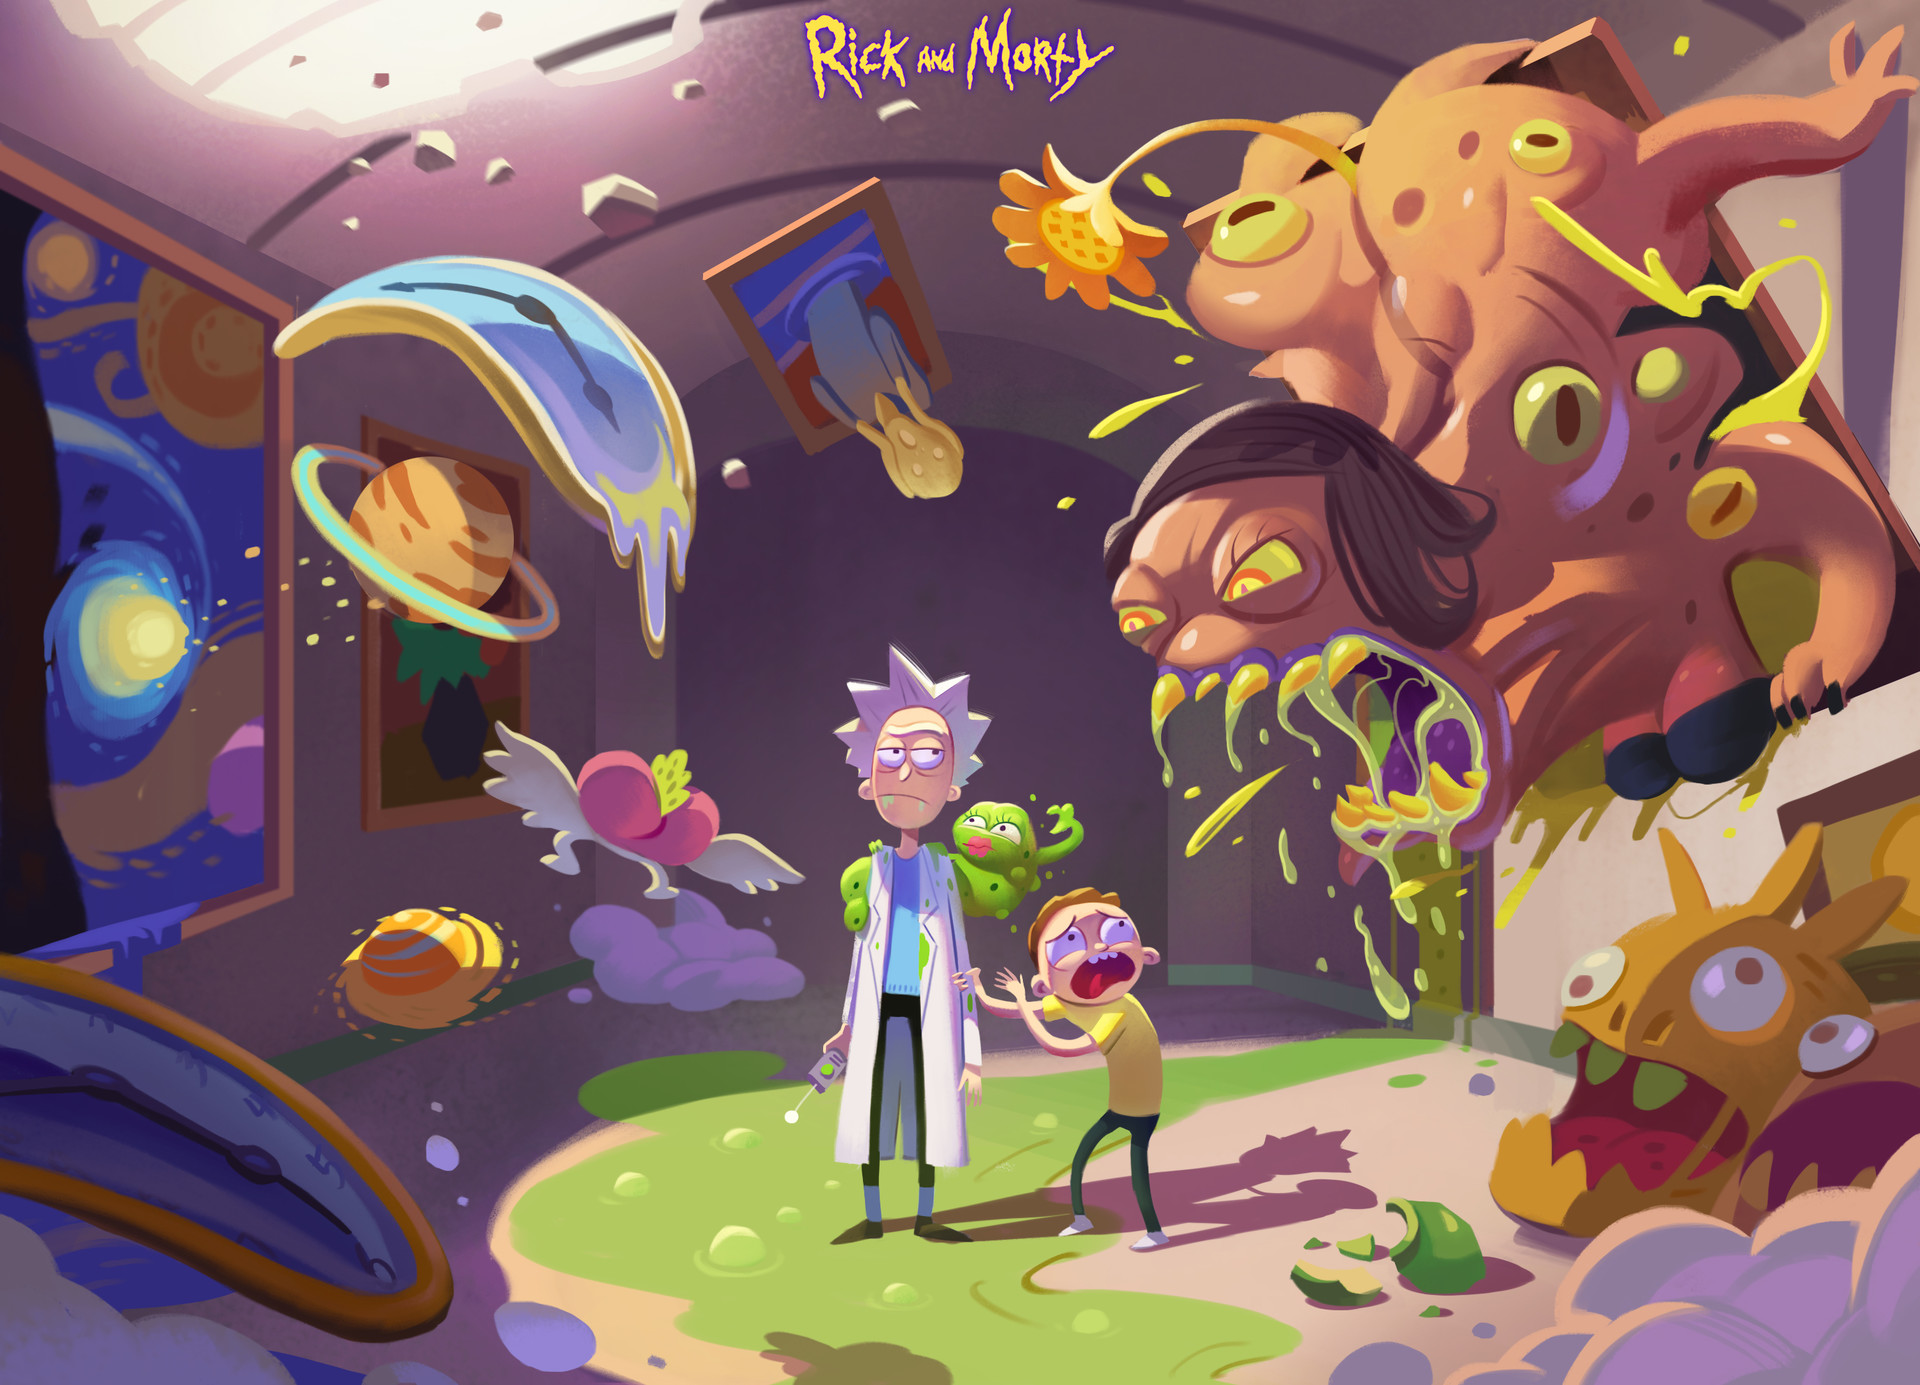 1336x768 rick and morty hd art laptop hd hd 4k wallpapers images backgrounds photos and pictures - Rick and morty download ...